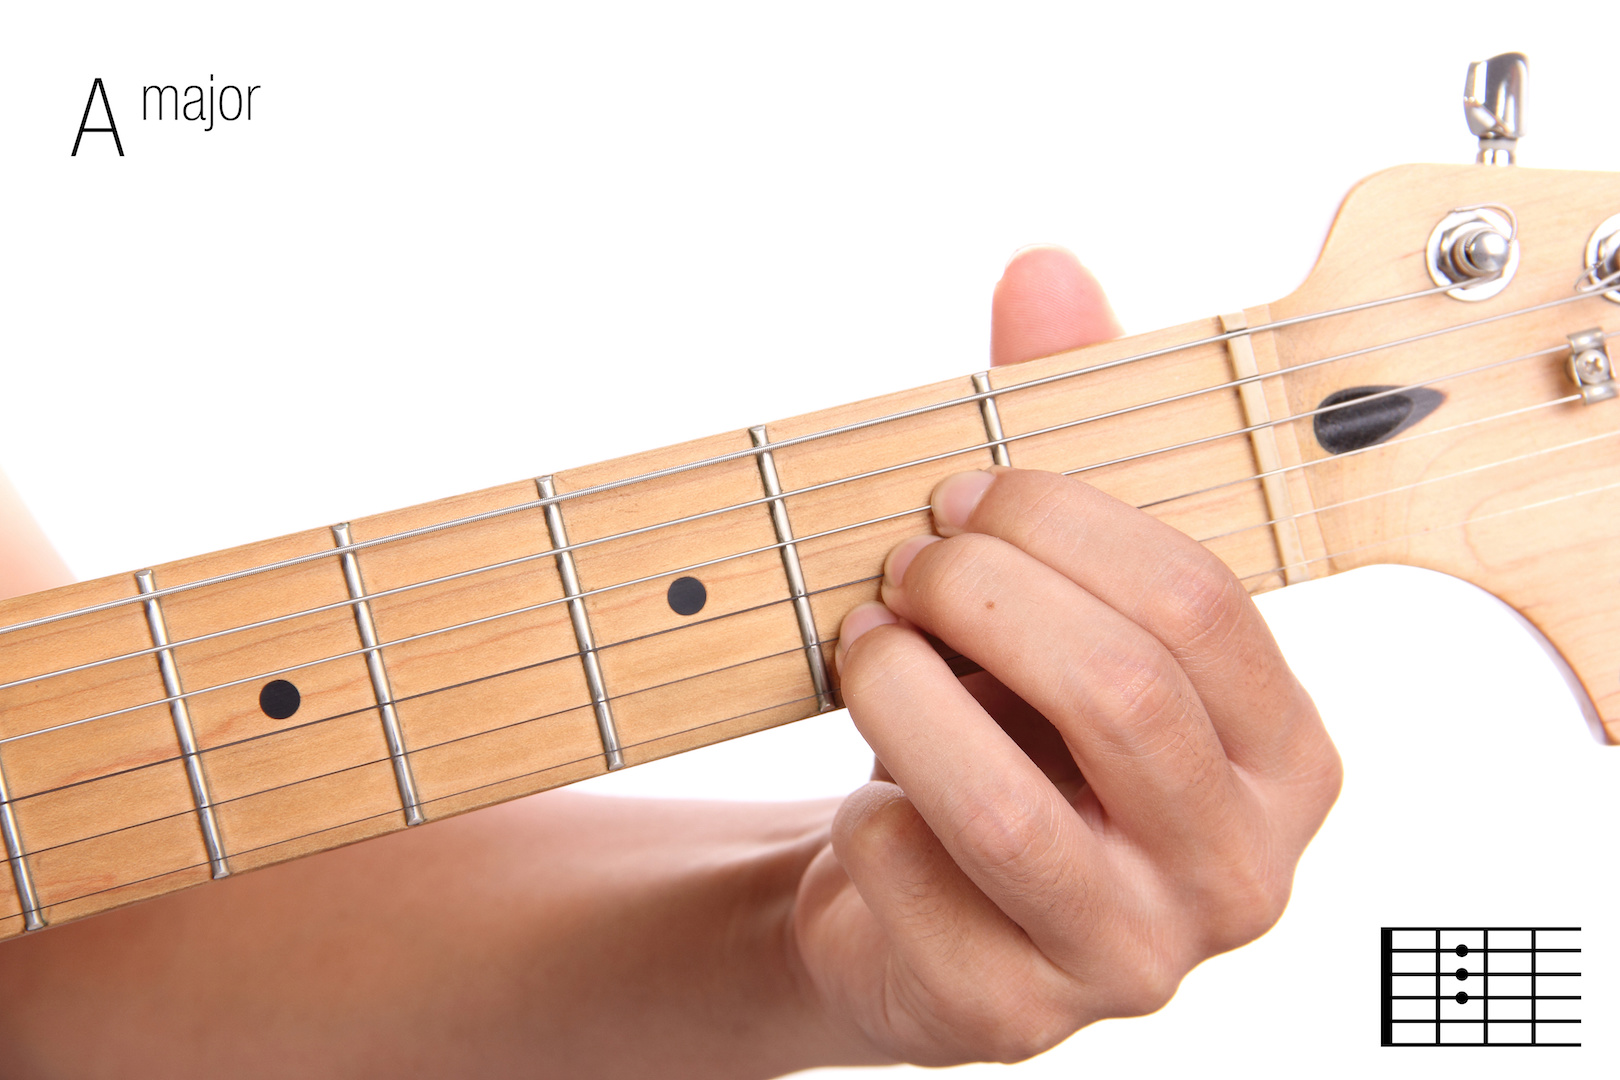 A Major Chord on Guitar Chord Shapes, A Major Scale, Songs